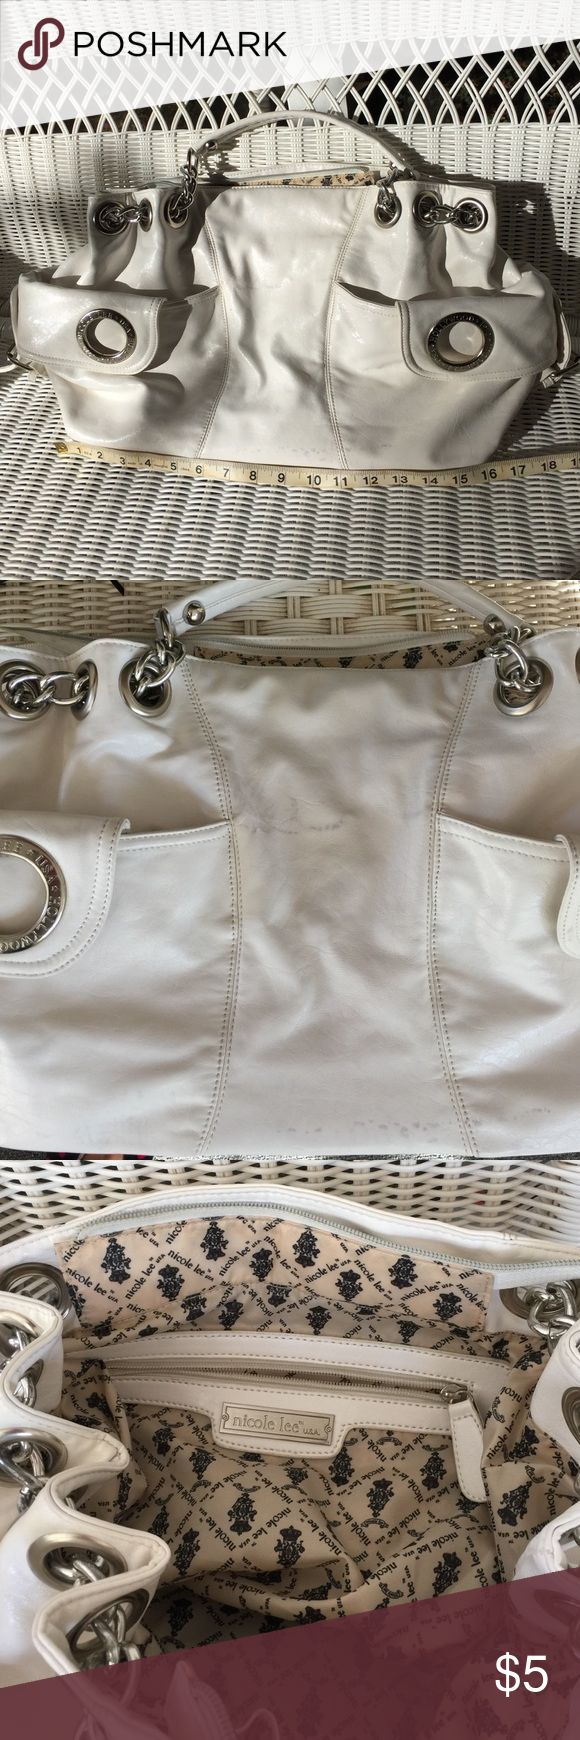 Fashion bag. Big fashion bag to carry everything. Even a laptop 17 inches will fit fine. Bag has a flaw as seen in 2 nd picture ( has a gray sort of marking on it) this is reason priced so low. However flaw is only on one side of bag. Inside is excellent condition. Nicole Lee Bags Satchels